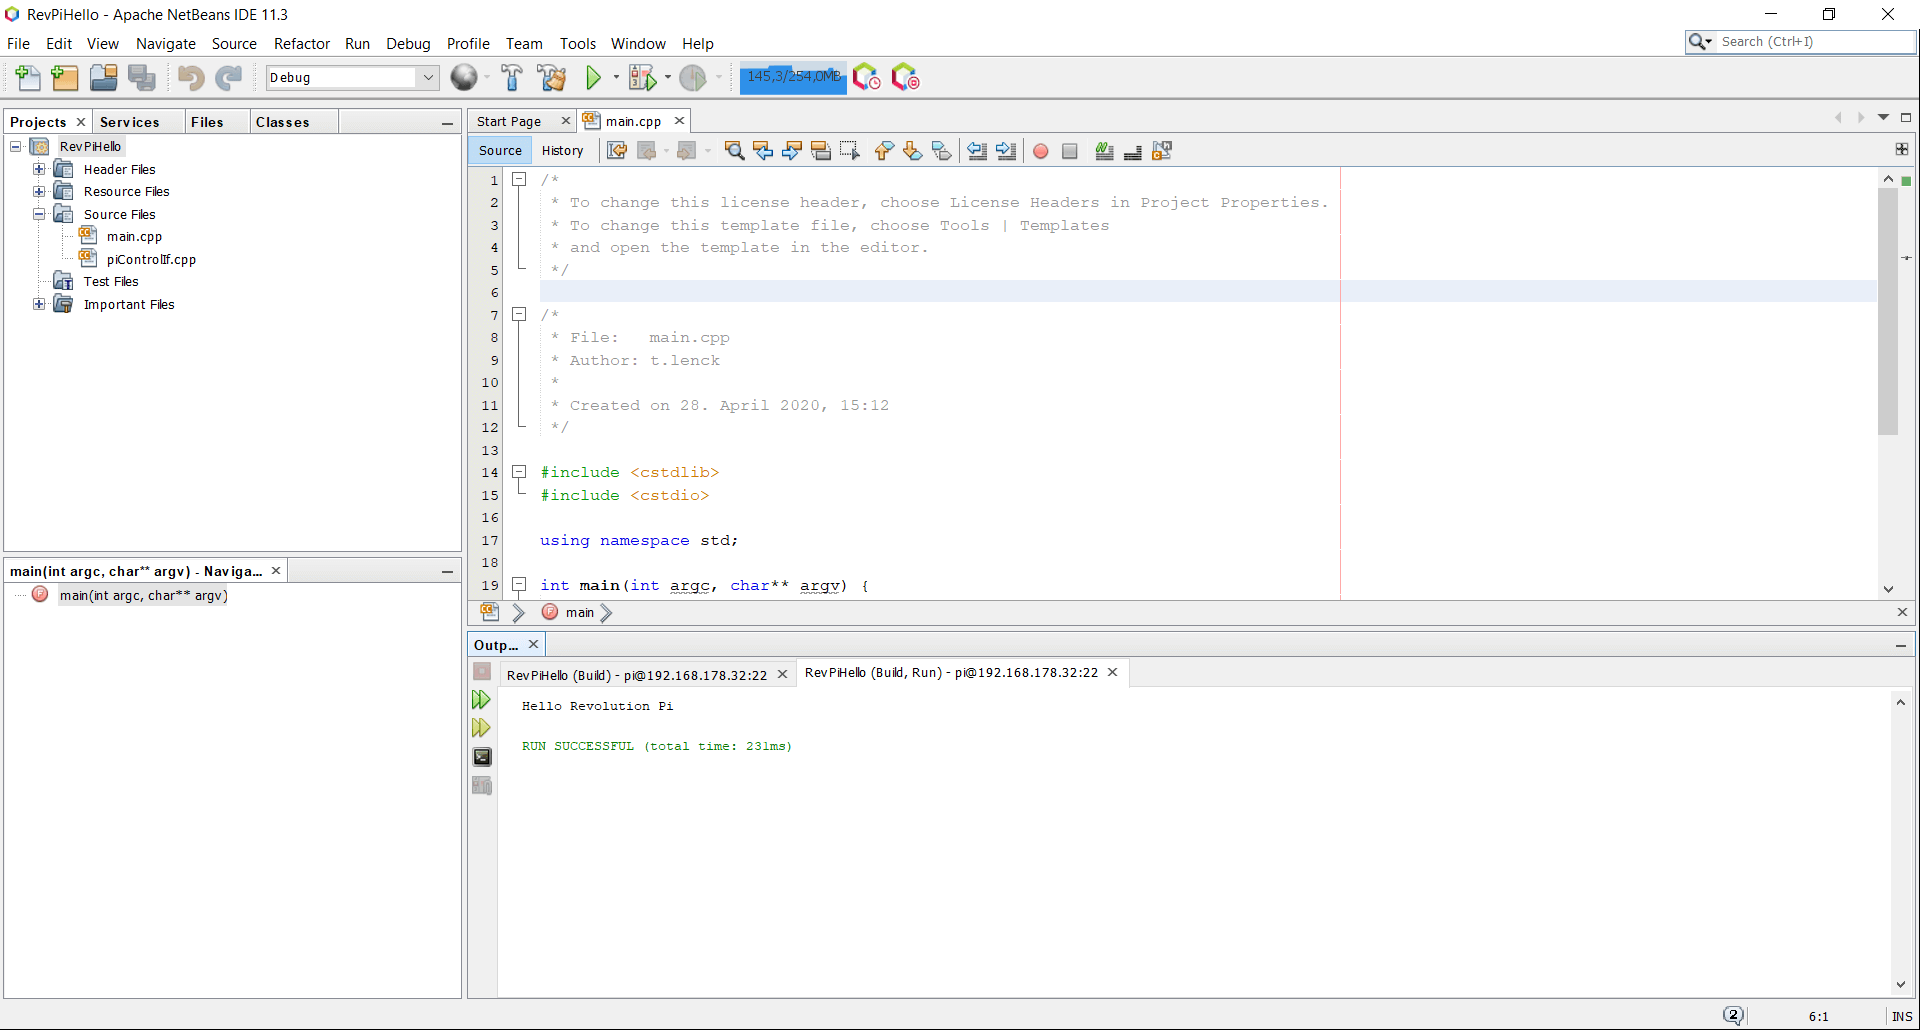 Screenshot of Netbeans showing the output of revpihello directly in the integrated console